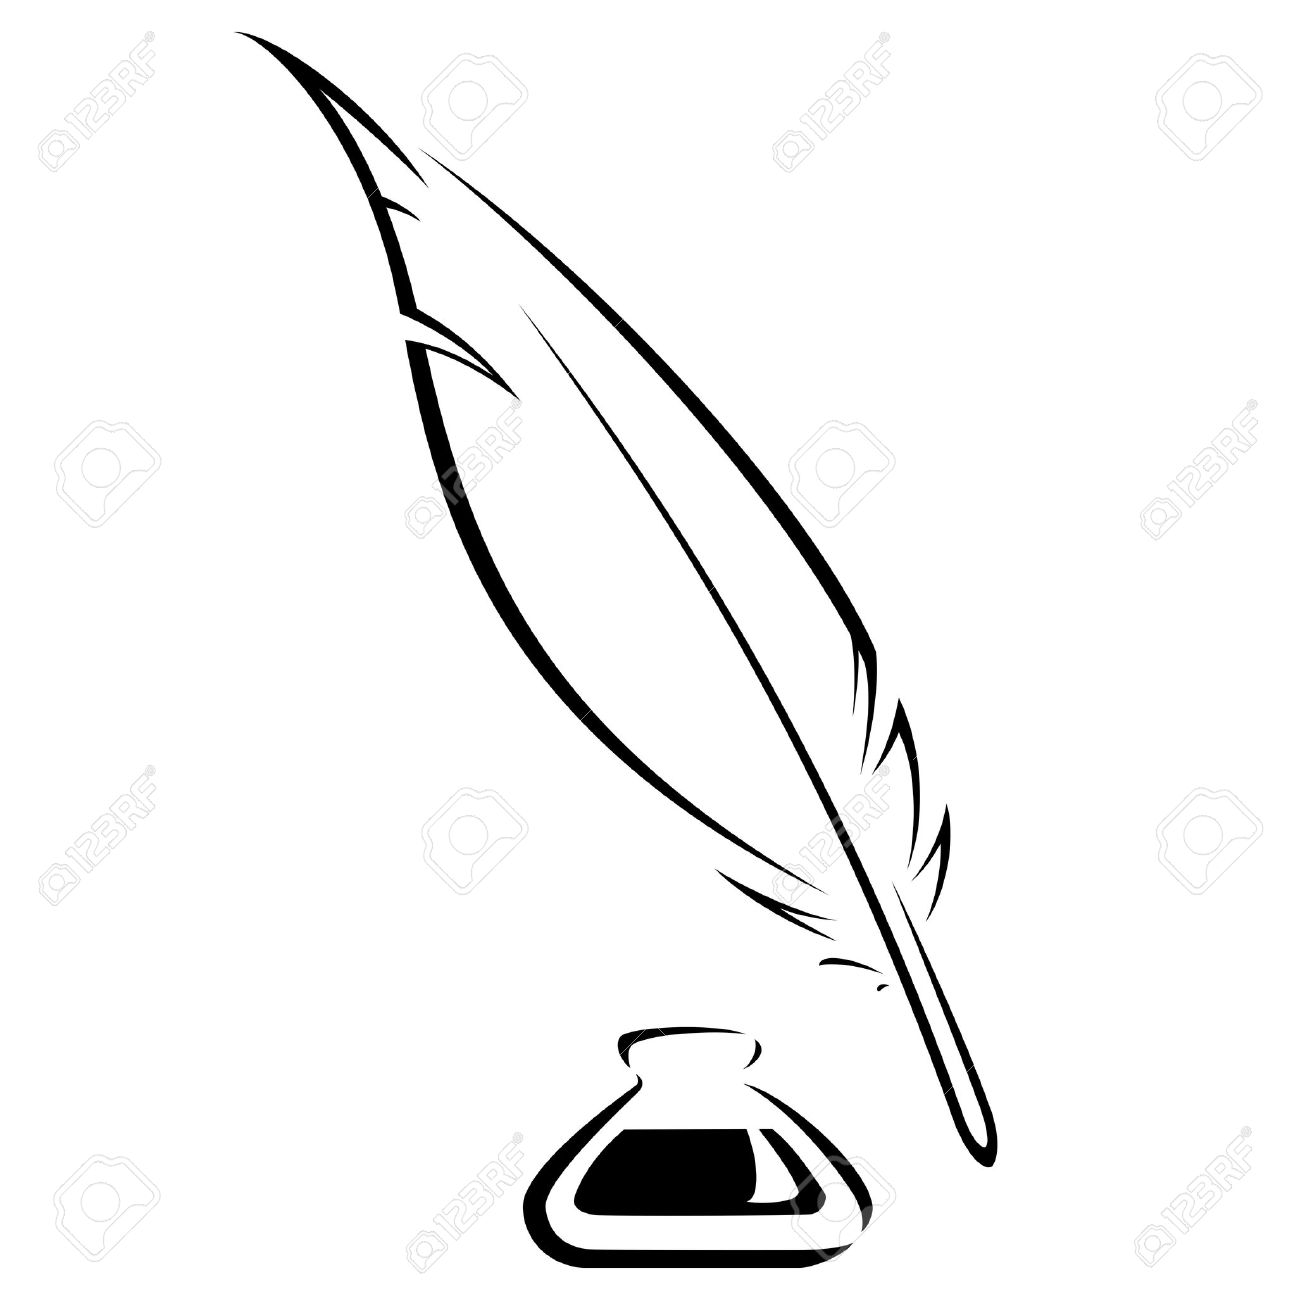 1293x1300 Simple Quill And Inkwell Black Vector Image Stock Photo, Picture